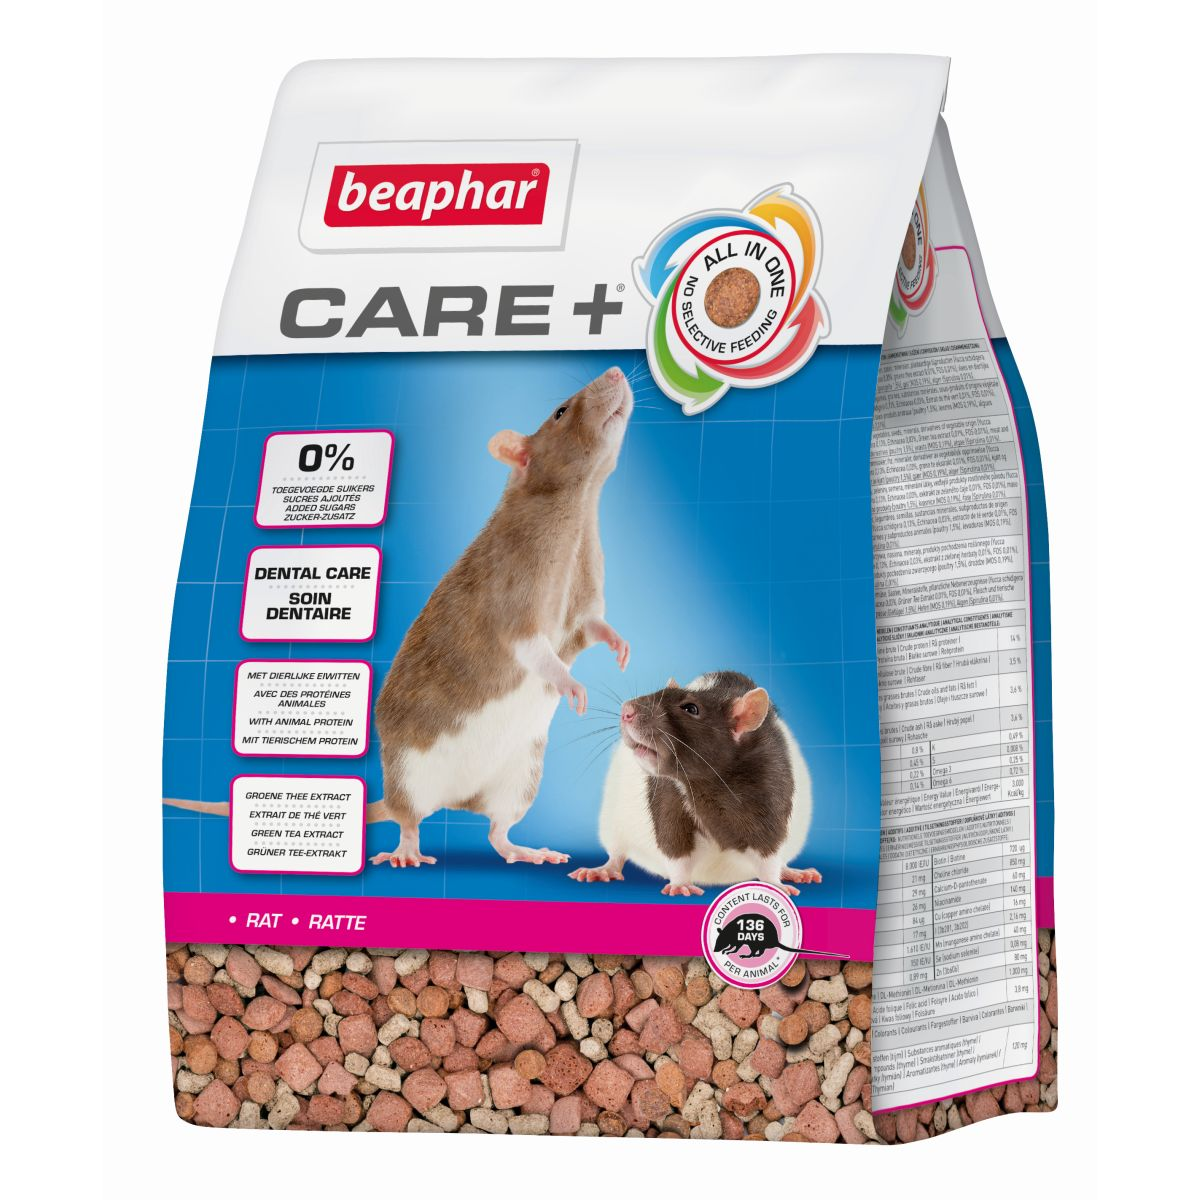 BEA CARE+ RAT 250GR 00001